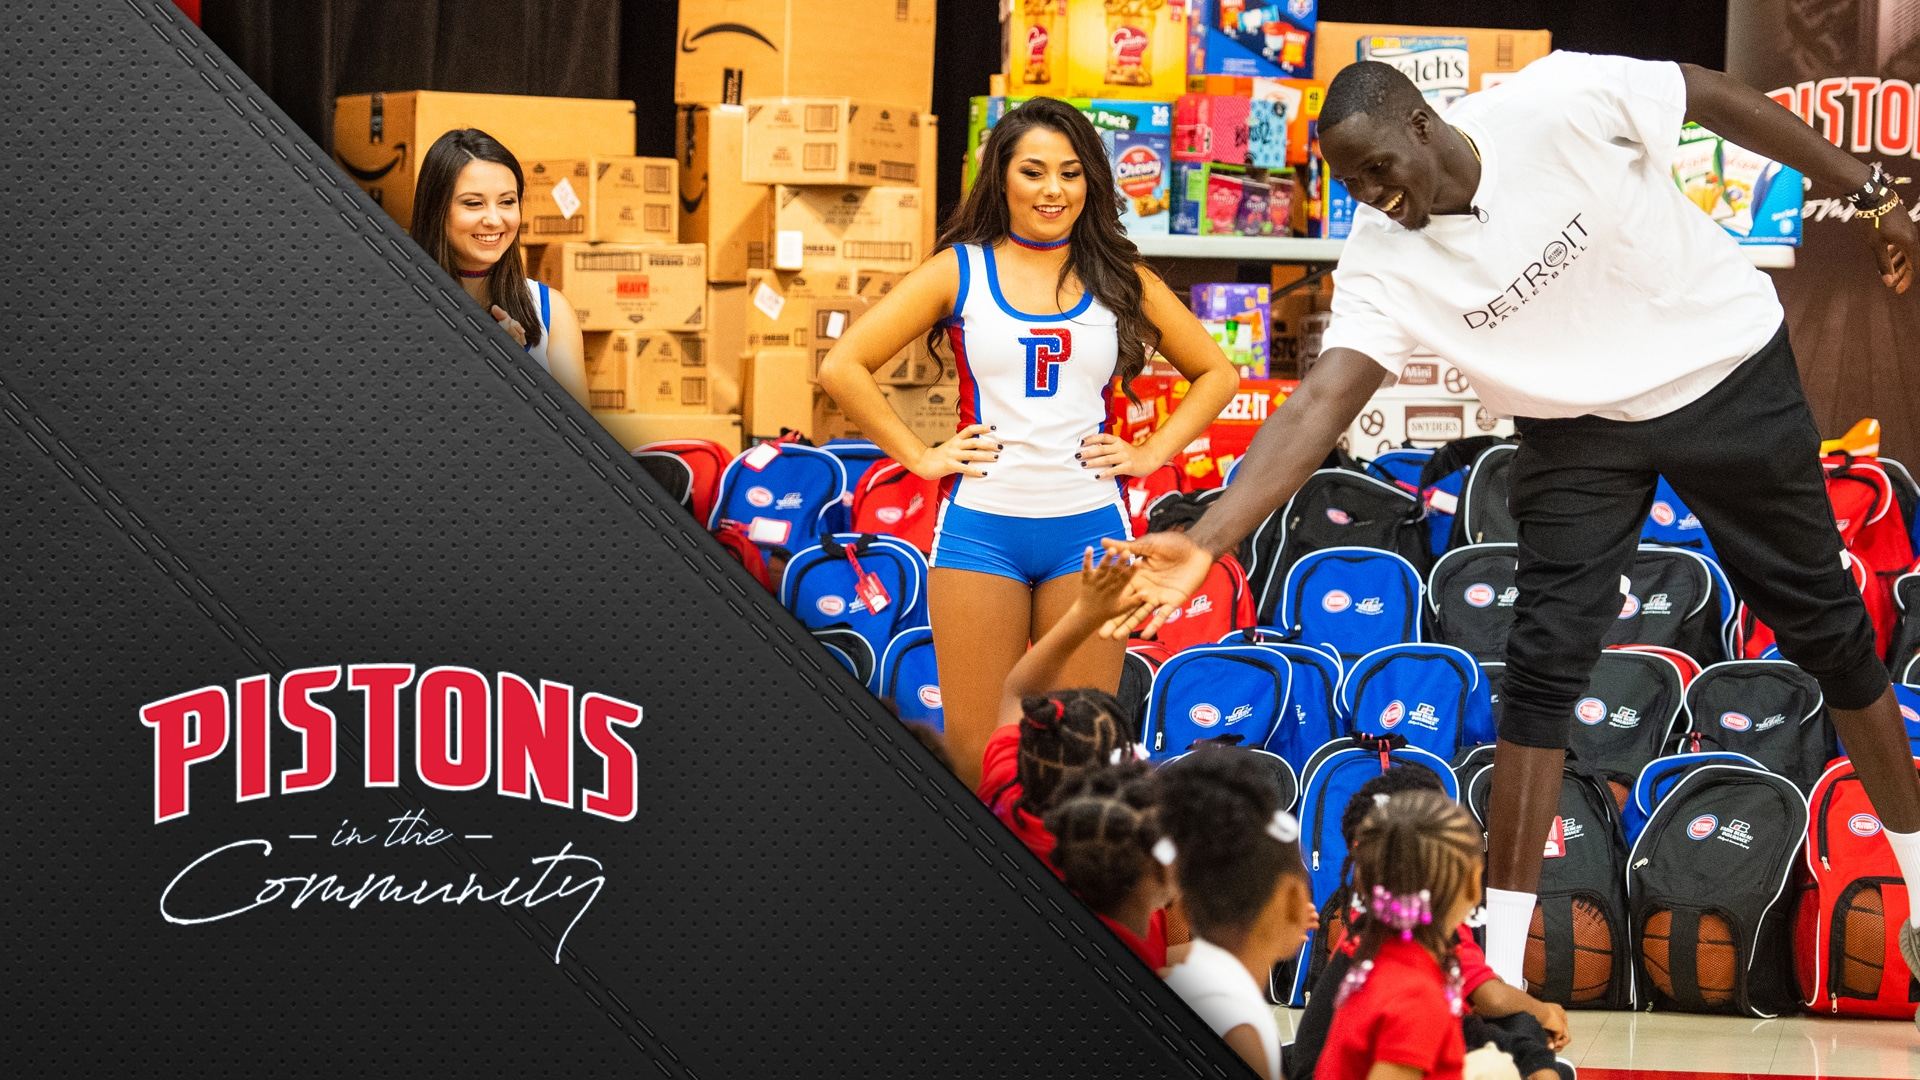 Pistons in the Community: Celebrating Mentoring Month